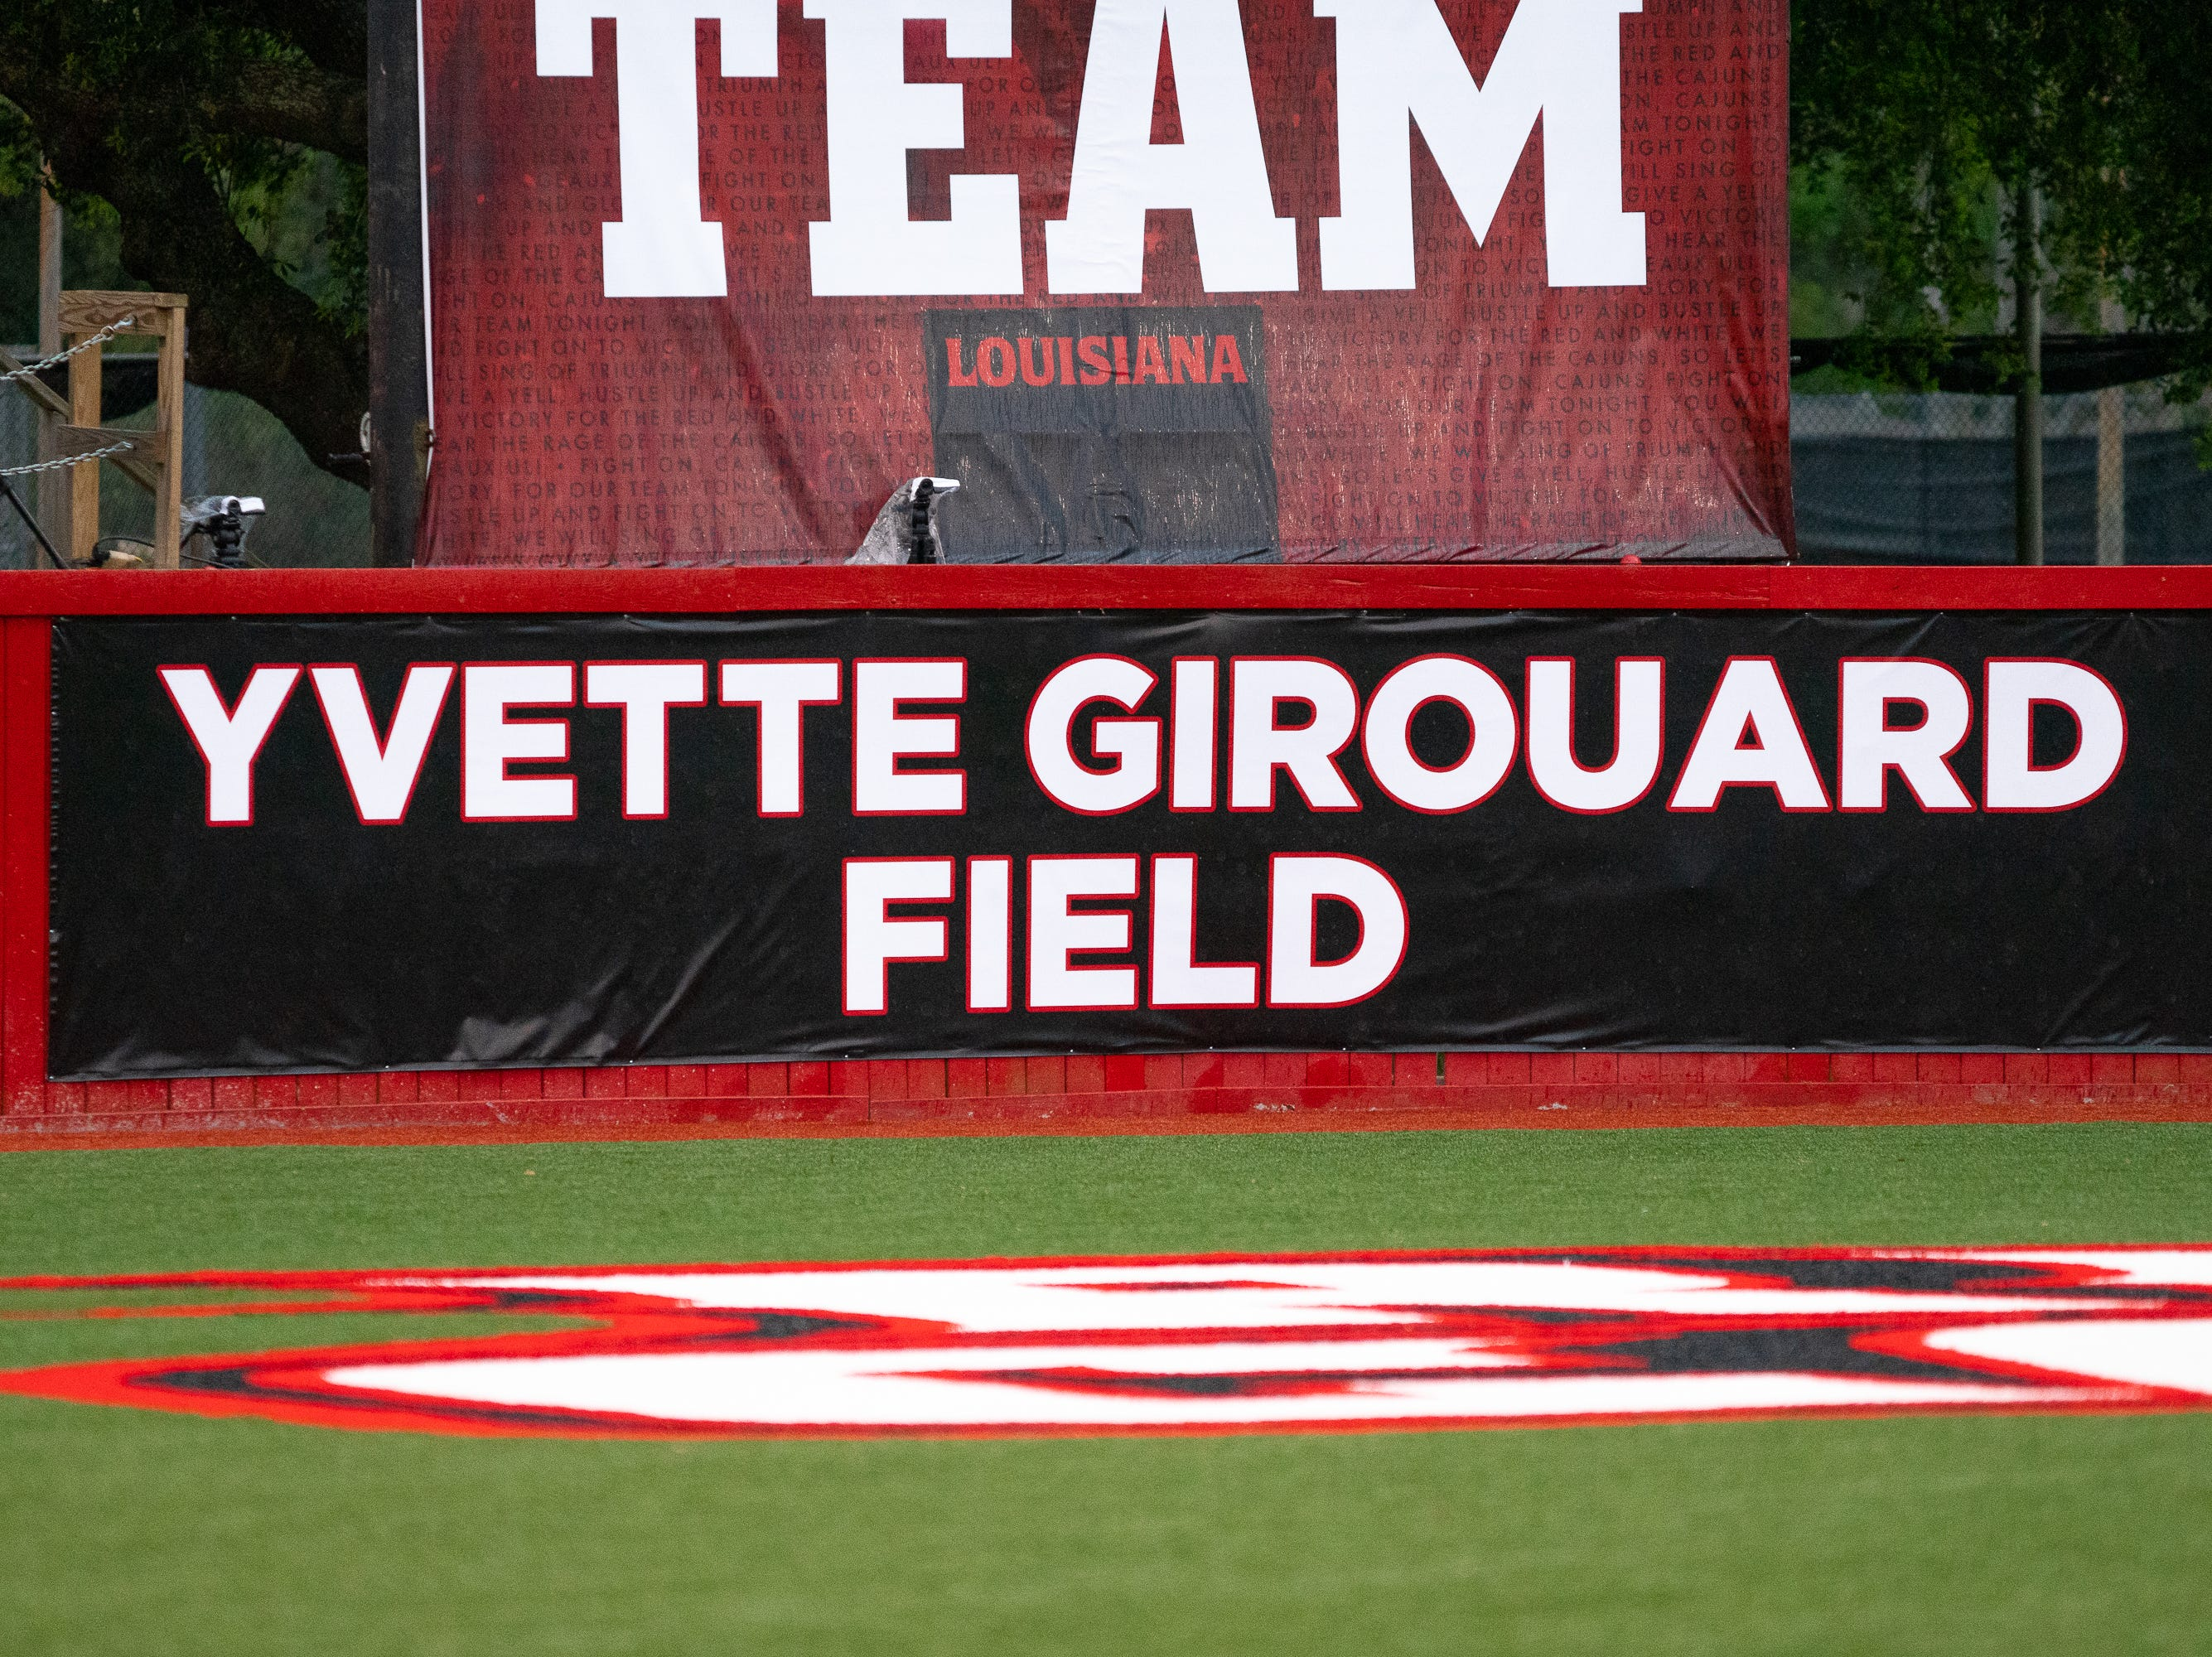 A sign of the newly named field dedicated to former UL softball coach Yvette Girouard is on display as the Ragin' Cajuns take on the Troy Trojans at Lamson Park, Yvette Girouard Field on Friday, March 15, 2019.